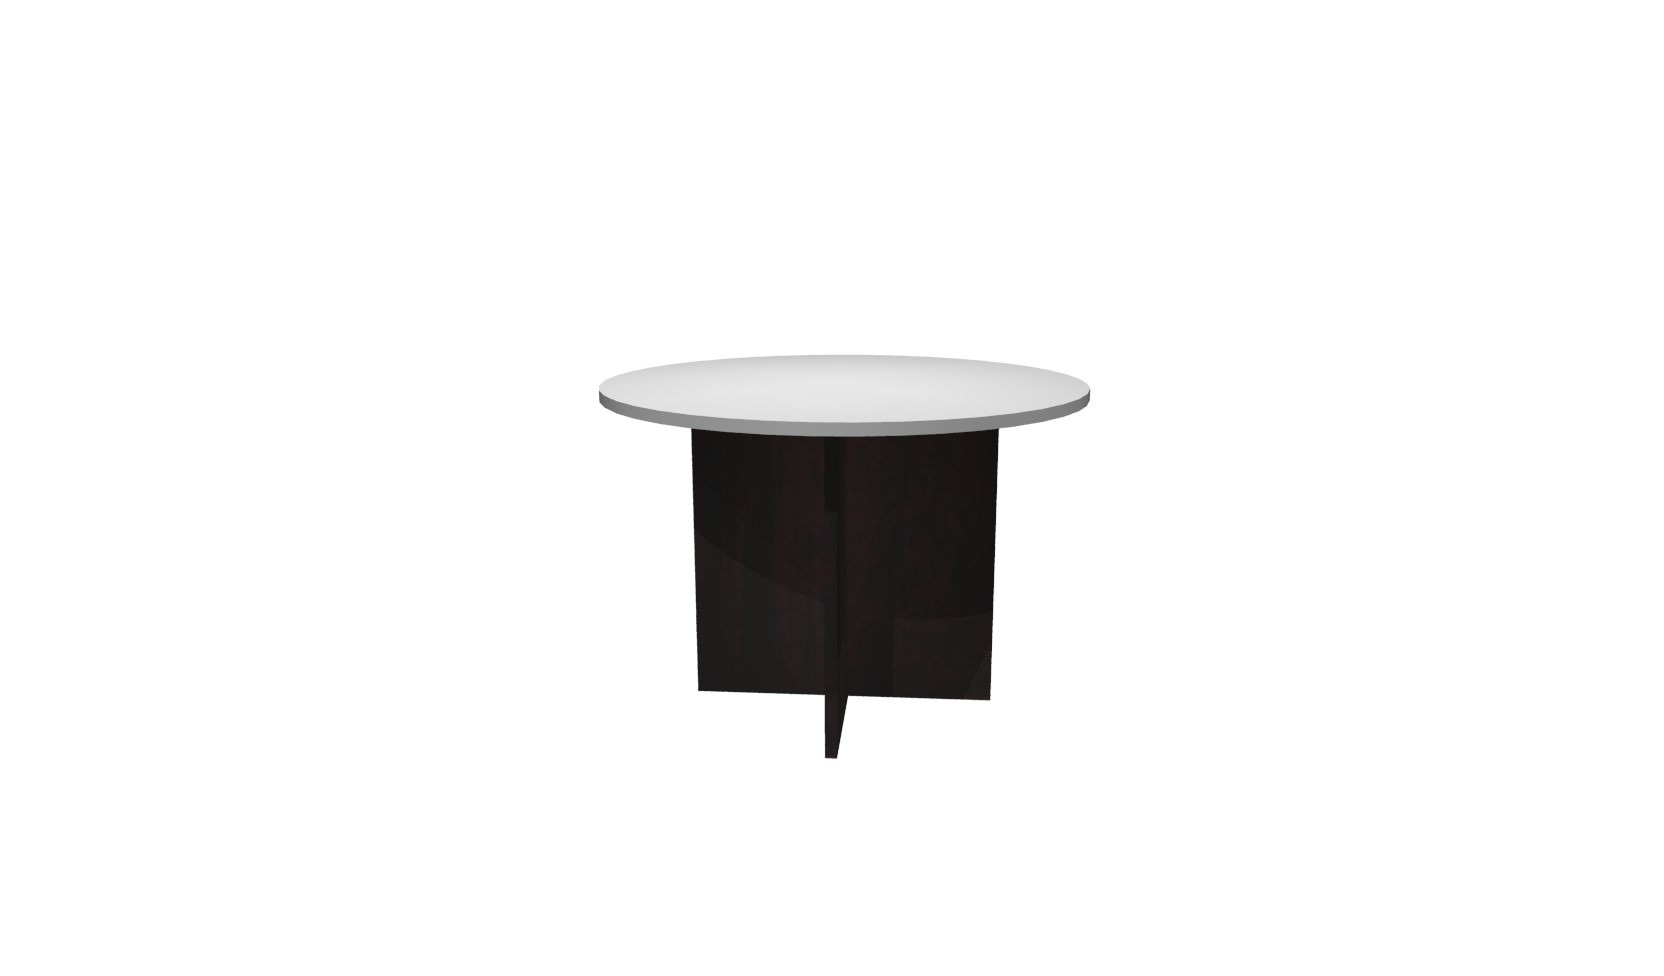 Inch Round Conference Table White Mahogany - 42 inch round conference table